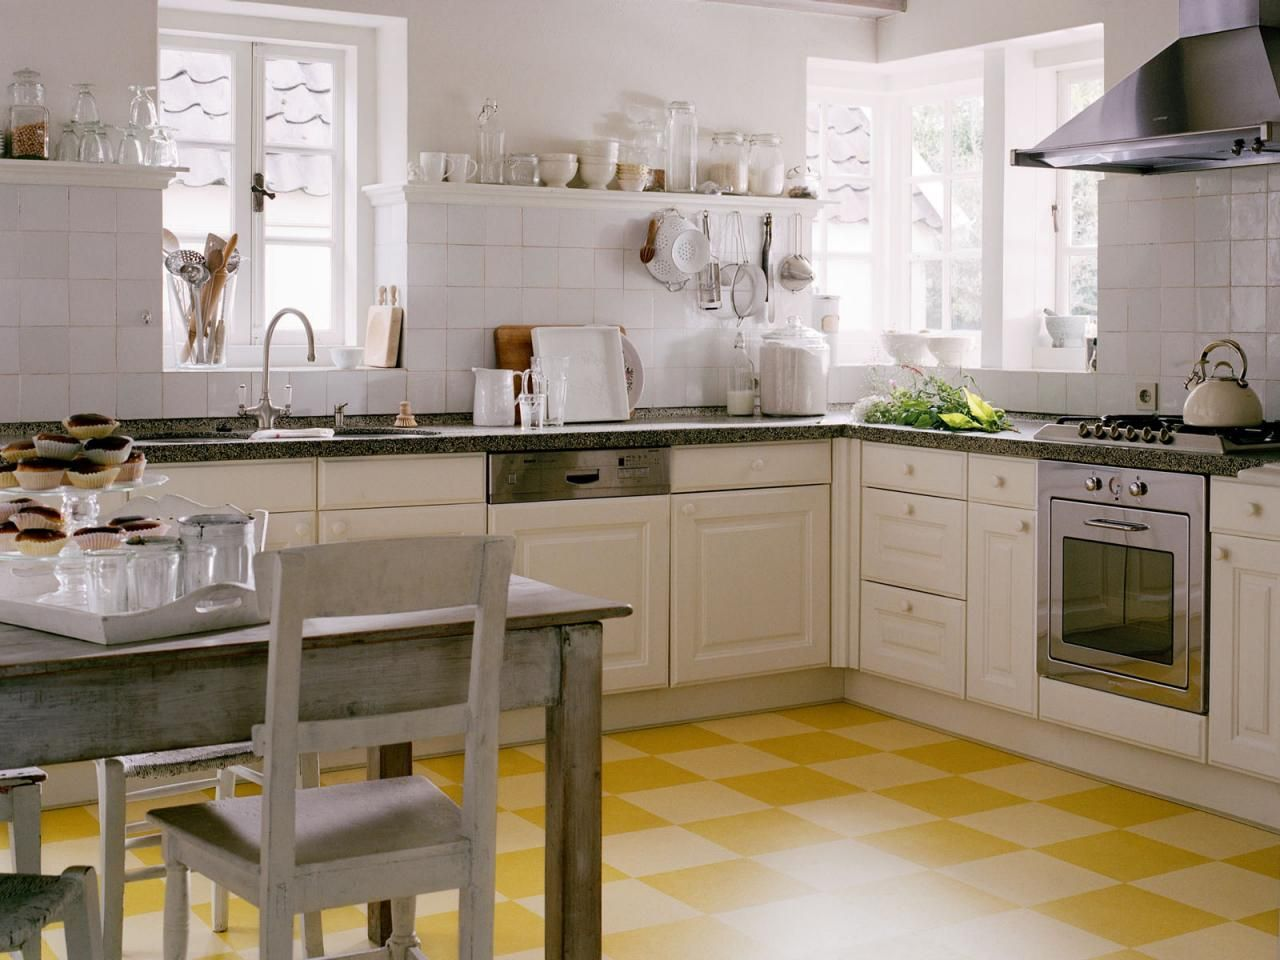 Floor Types For Kitchen 17 Best Ideas About Linoleum Kitchen Floors On Pinterest Paint